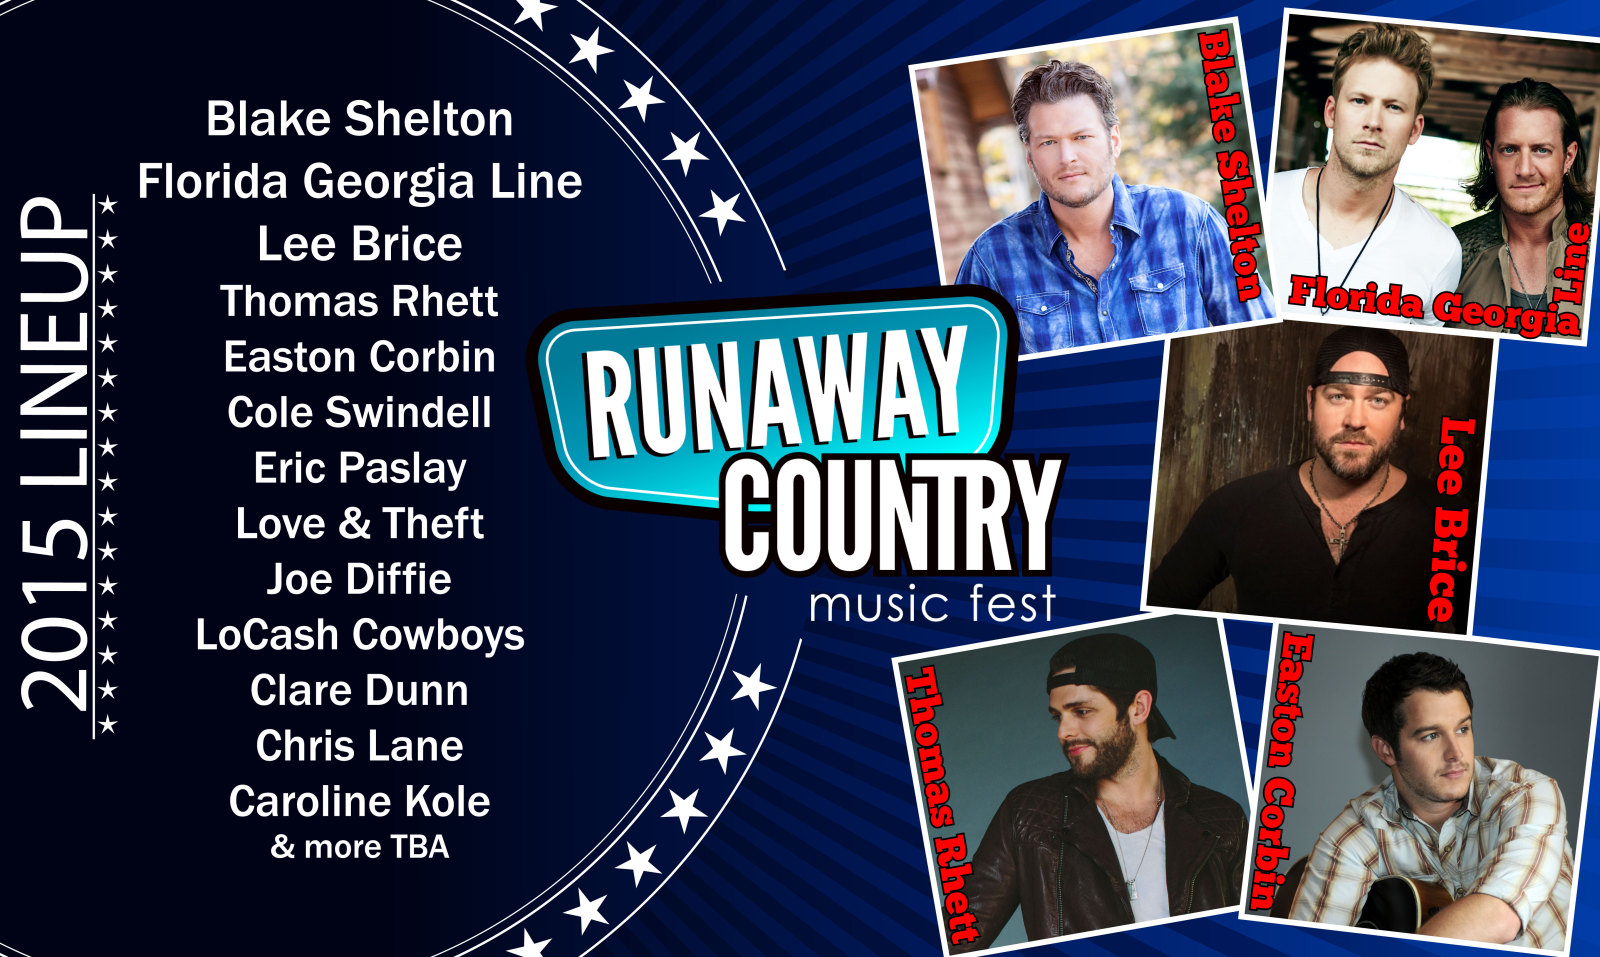 Runaway Country Music Festival 2015 gifts